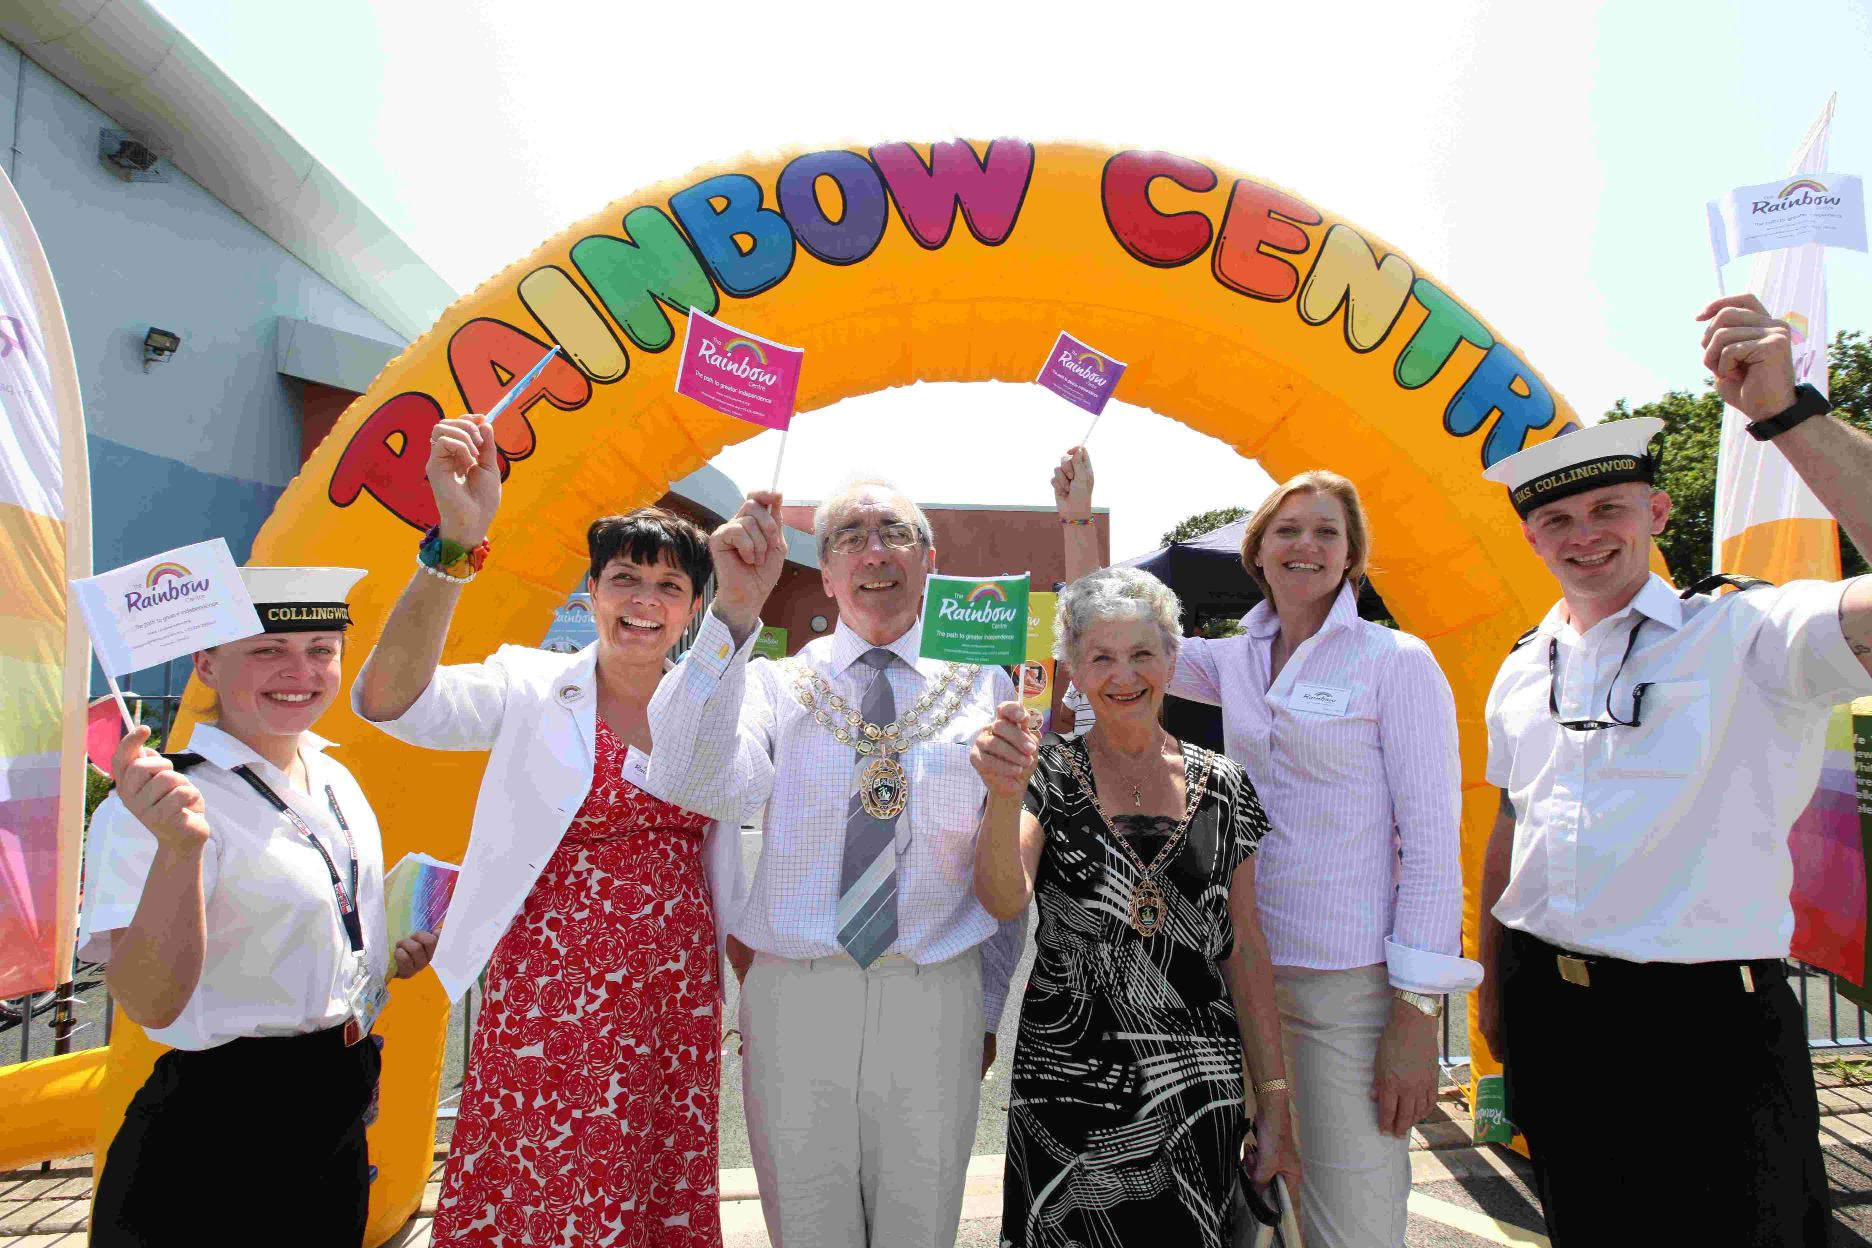 Jamie-Lee McGuinness (HMS Collingwood) Lucy Docherty (chair of the Rainbow Centre) Fareham Mayor and Mayoress Cllr David and Pamela Norris, Lara Bull (director of Rainbow Centre) and James Robertson (HMS Collingwood)